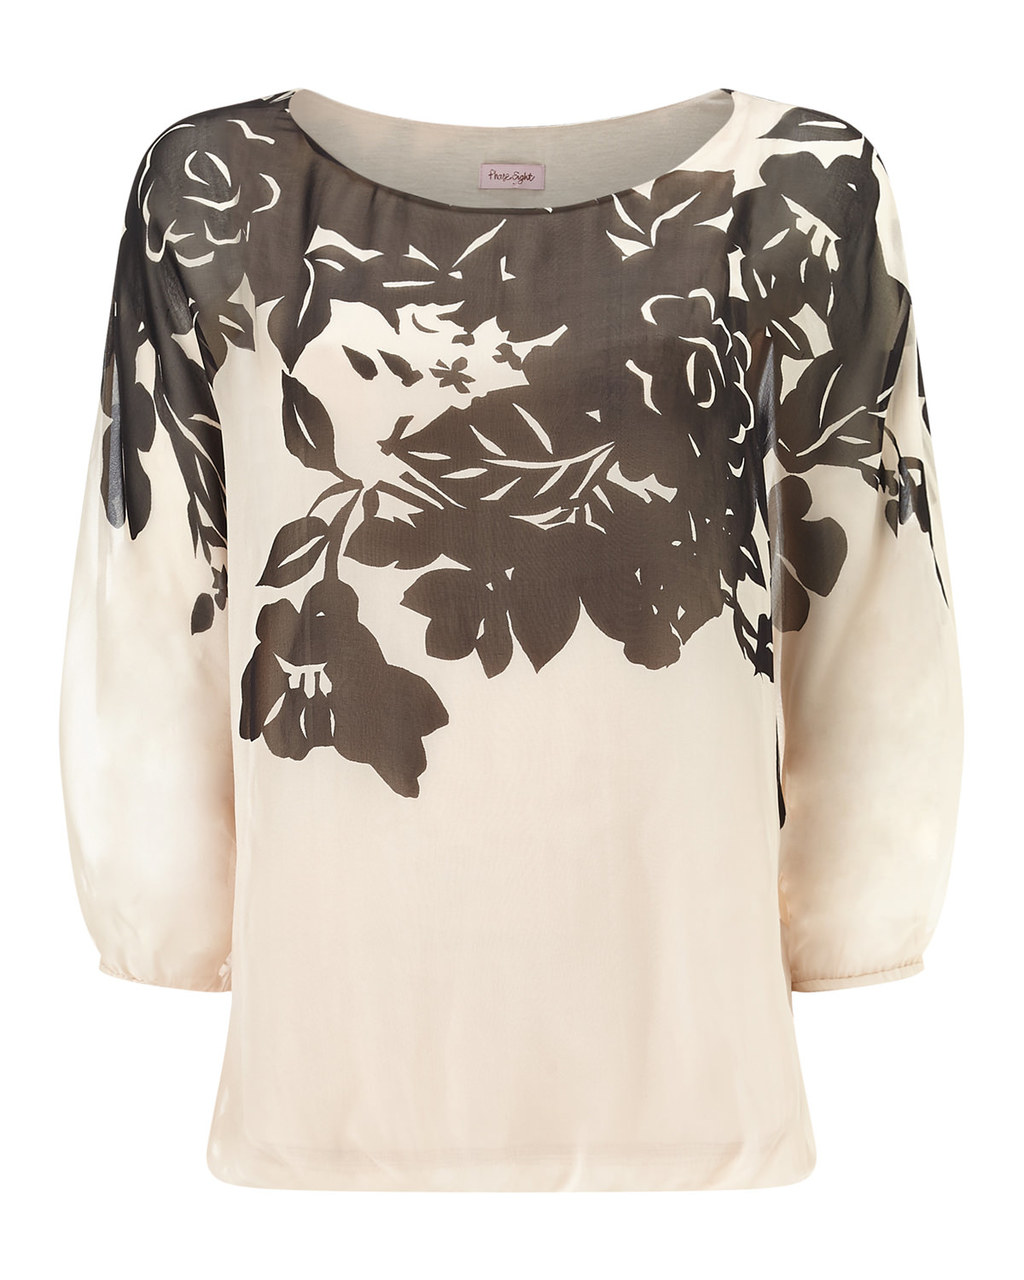 Ashlyn Oversized Silk Blouse - neckline: round neck; style: blouse; predominant colour: ivory/cream; secondary colour: chocolate brown; occasions: work, occasion; length: standard; fibres: silk - 100%; fit: body skimming; sleeve length: 3/4 length; sleeve style: standard; texture group: silky - light; pattern type: fabric; pattern size: standard; pattern: florals; season: s/s 2016